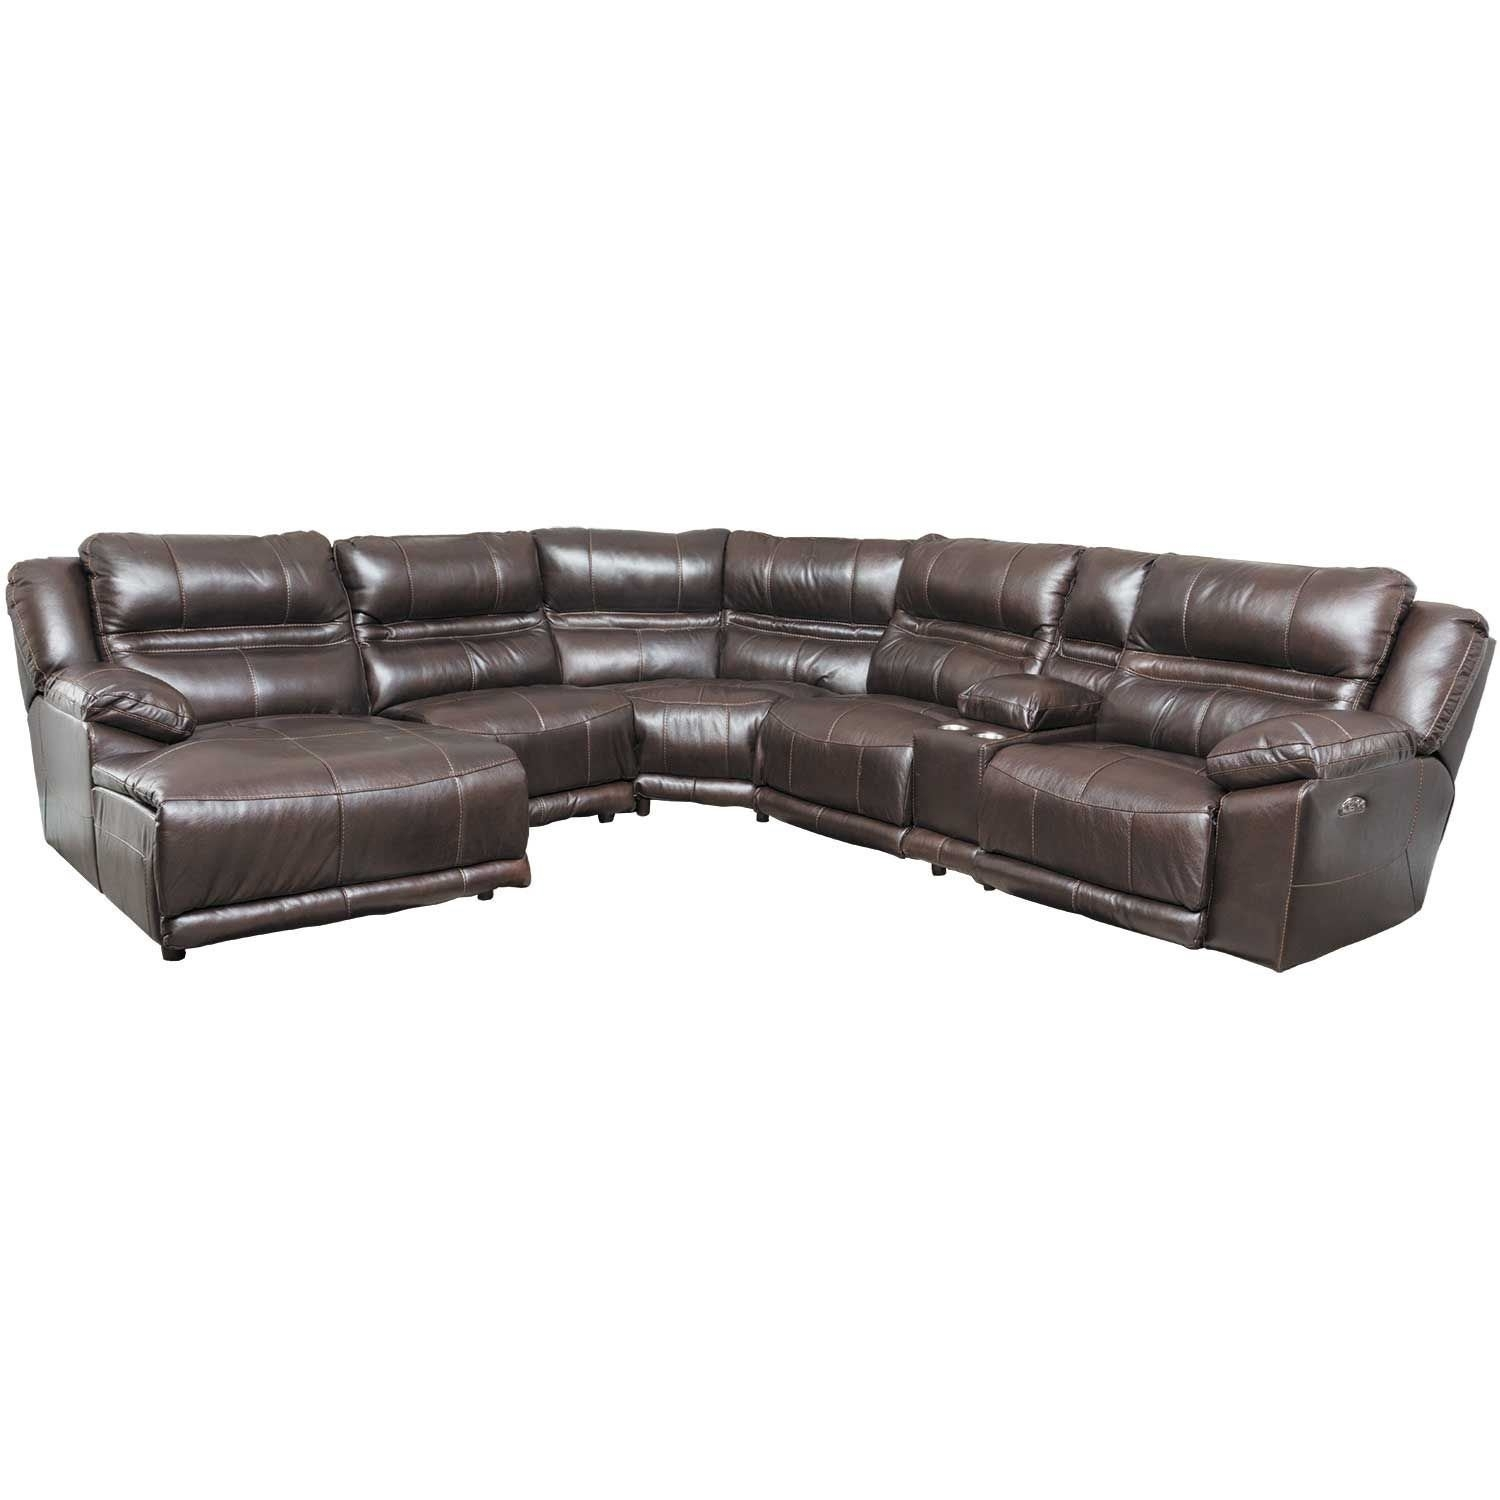 Bergamo 6 Piece Power Reclining Sectional With Adjustable Headrest Within Jackson 6 Piece Power Reclining Sectionals (View 2 of 25)